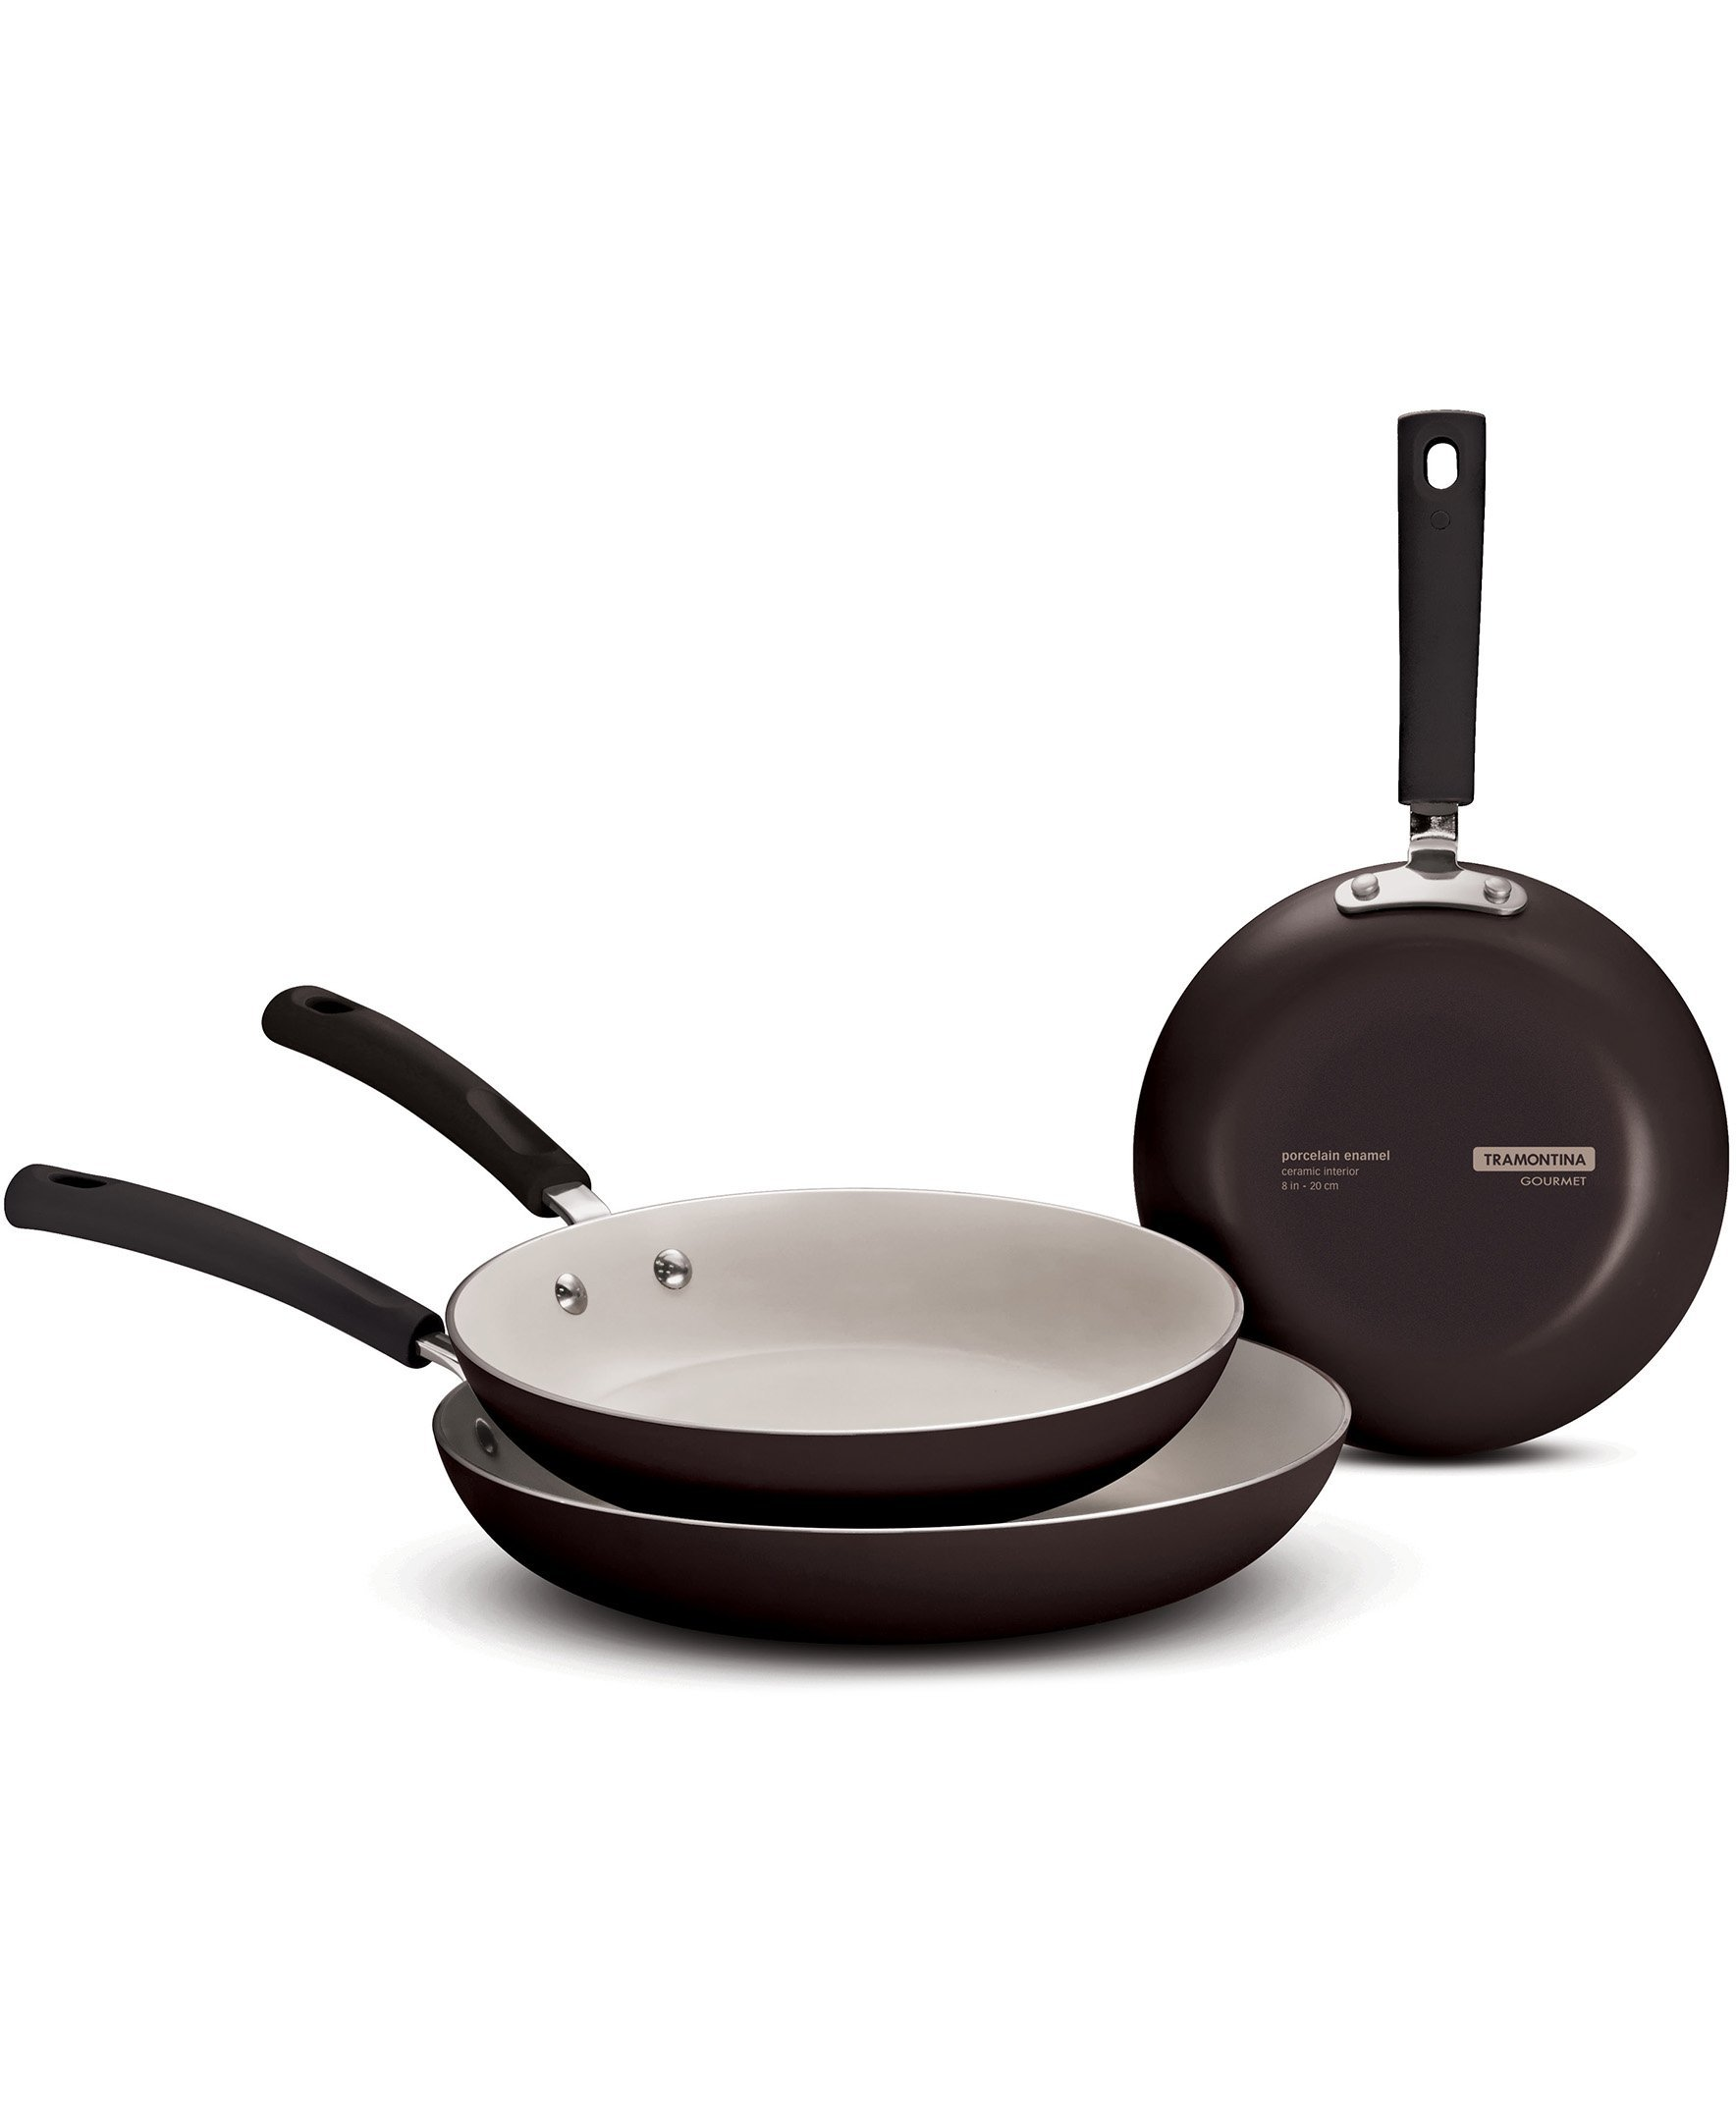 Tramontina 80157/003DS Gourmet Ceramic Aluminum, Made in USA, Black Cherry 3-pack fry pans,